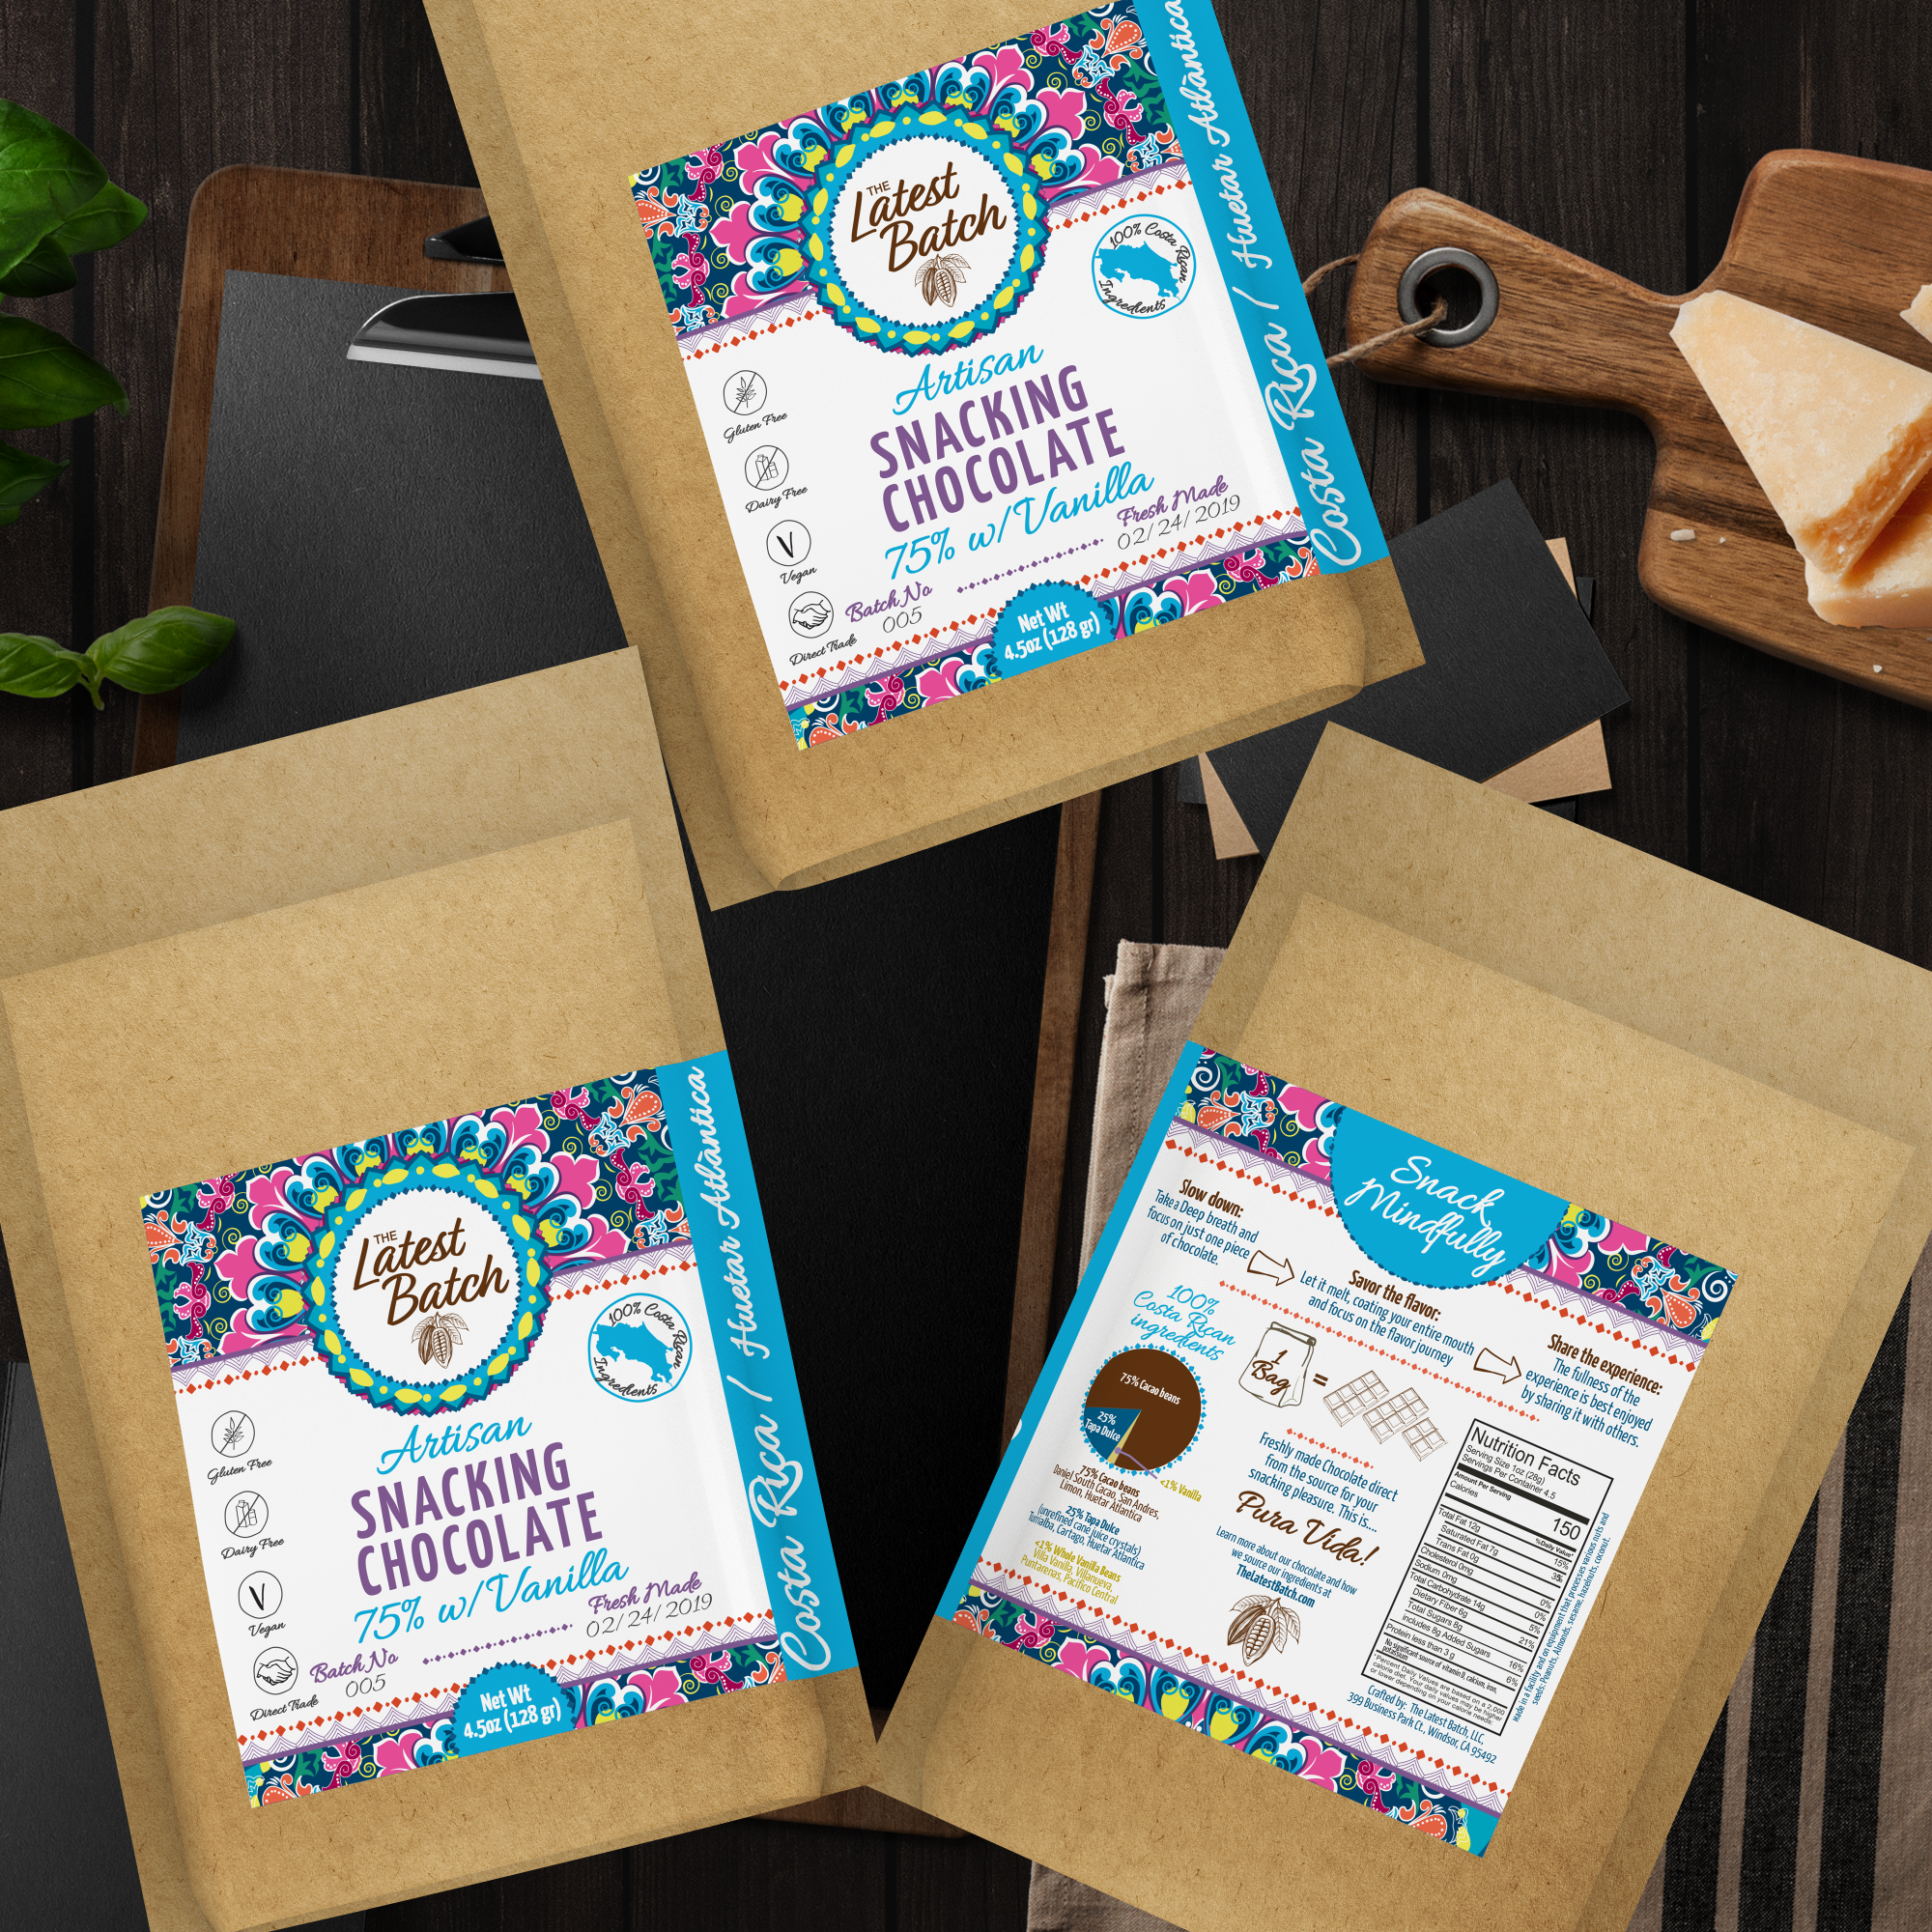 The latest batch chocolate label redesign